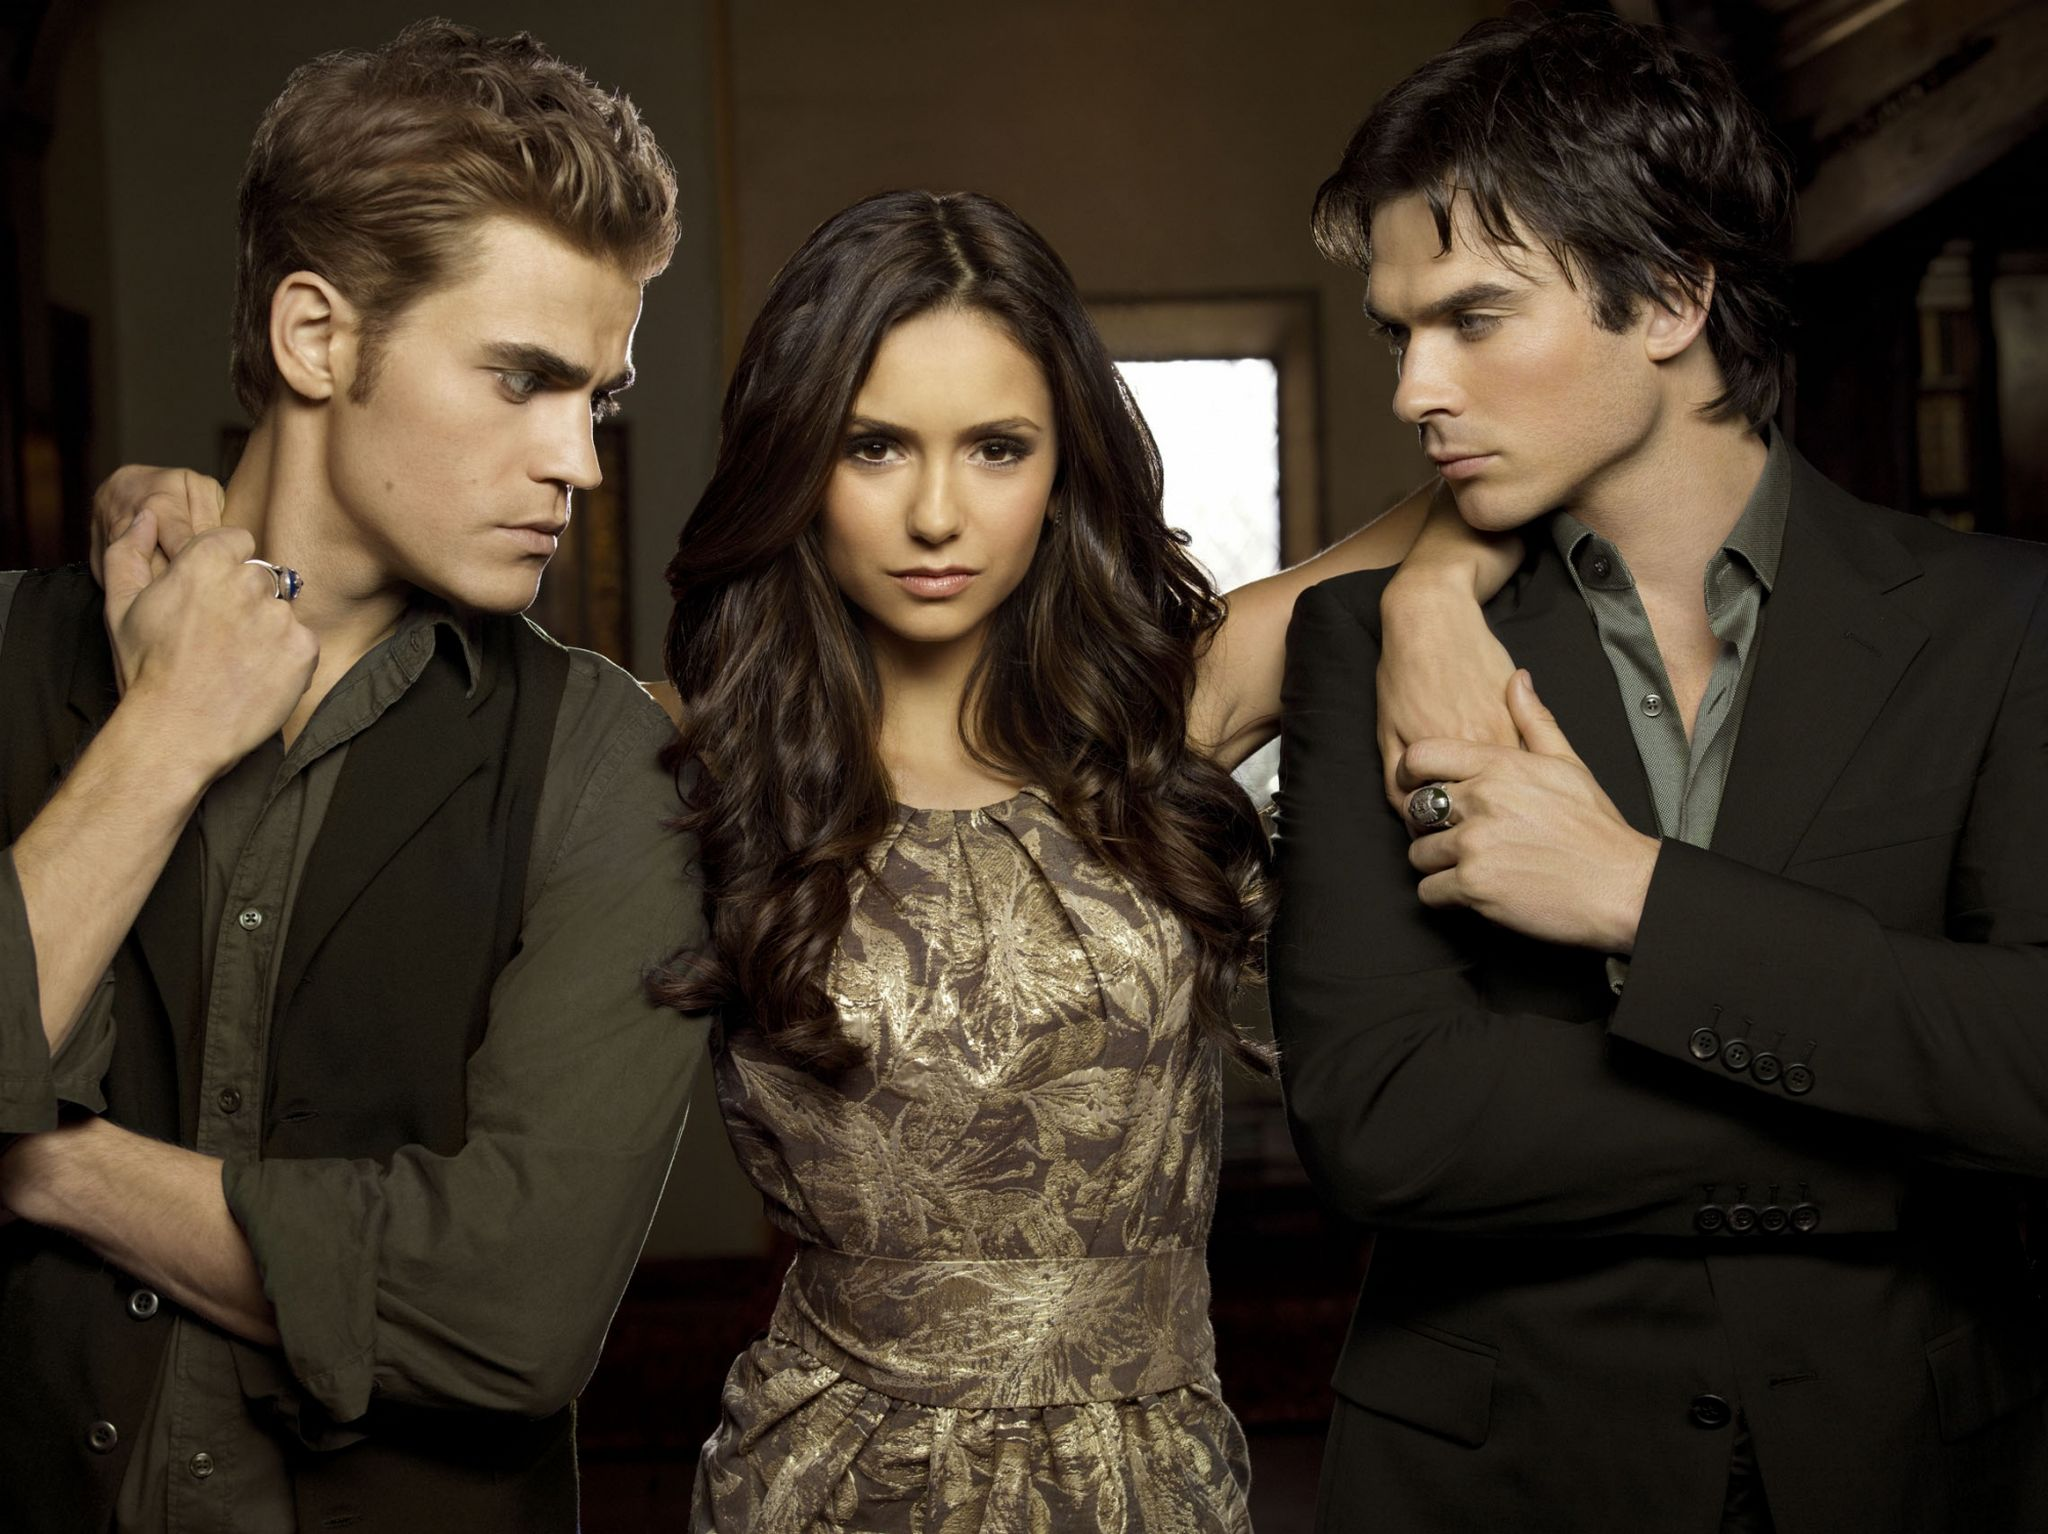 Paul Wesley, Nina Dobrev and Ian Somerhalder as Stefan, Elena and Damon